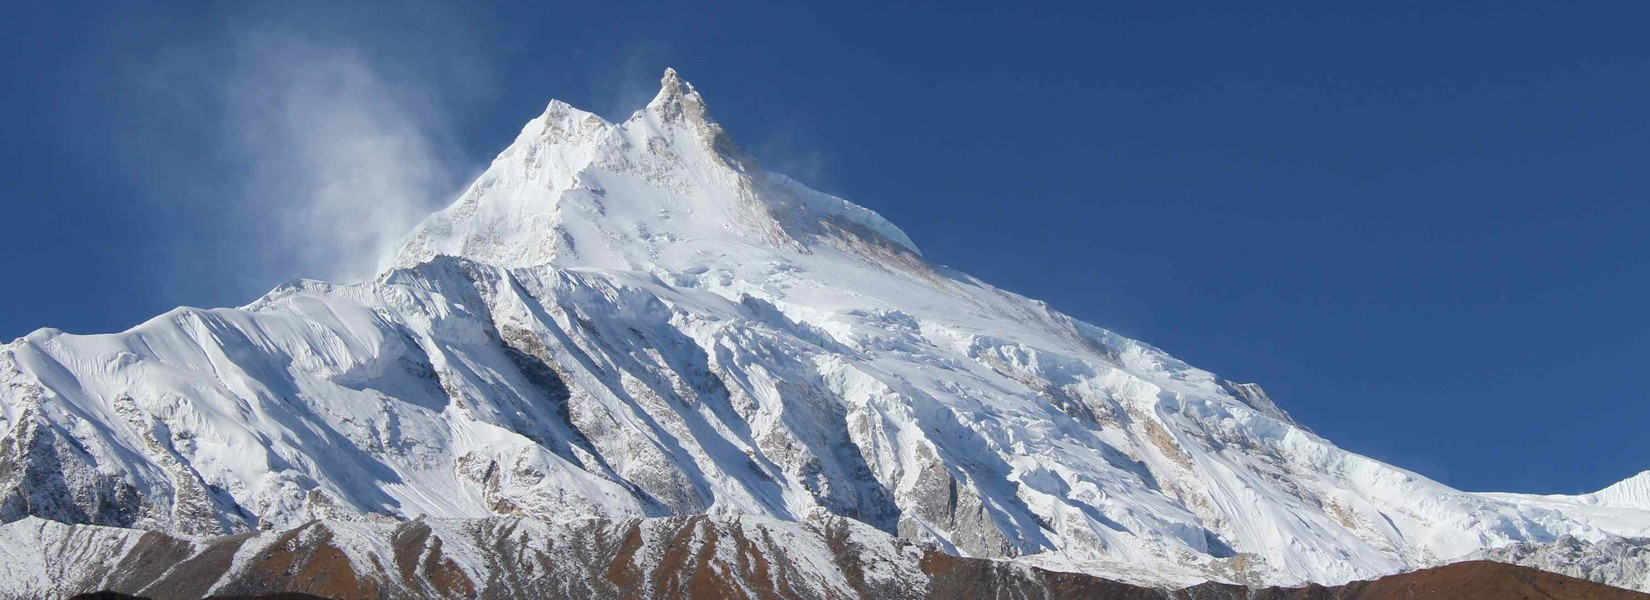 Manaslu Trek Route Accommodation Cost Itinerary Information